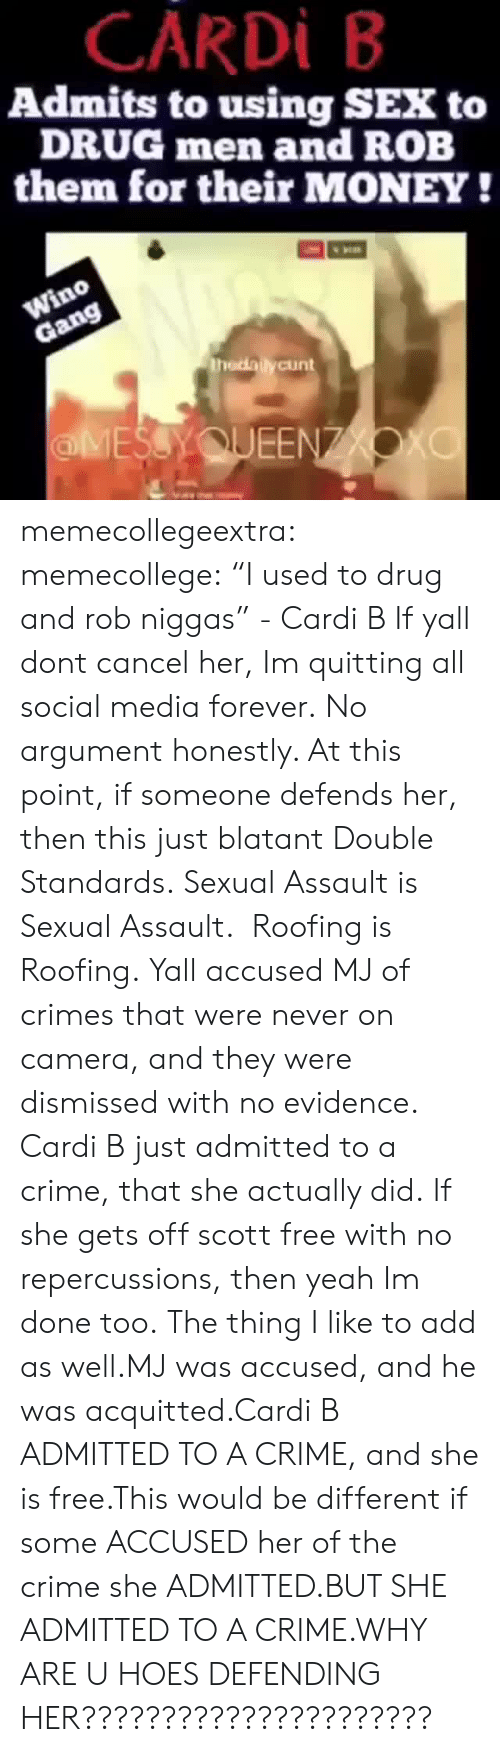 "Quitting: CARDİ B  Admits to using SEX to  DRUG men and ROB  them for their MONEY!  thedailycunt  ЕЕ memecollegeextra: memecollege:  ""I used to drug and rob niggas"" - Cardi B If yall dont cancel her, Im quitting all social media forever.  No argument honestly. At this point, if someone defends her, then this just blatant Double Standards. Sexual Assault is Sexual Assault.  Roofing is Roofing. Yall accused MJ of crimes that were never on camera, and they were dismissed with no evidence.  Cardi B just admitted to a crime, that she actually did. If she gets off scott free with no repercussions, then yeah Im done too.  The thing I like to add as well.MJ was accused, and he was acquitted.Cardi B ADMITTED TO A CRIME, and she is free.This would be different if some ACCUSED her of the crime she ADMITTED.BUT SHE ADMITTED TO A CRIME.WHY ARE U HOES DEFENDING HER??????????????????????"